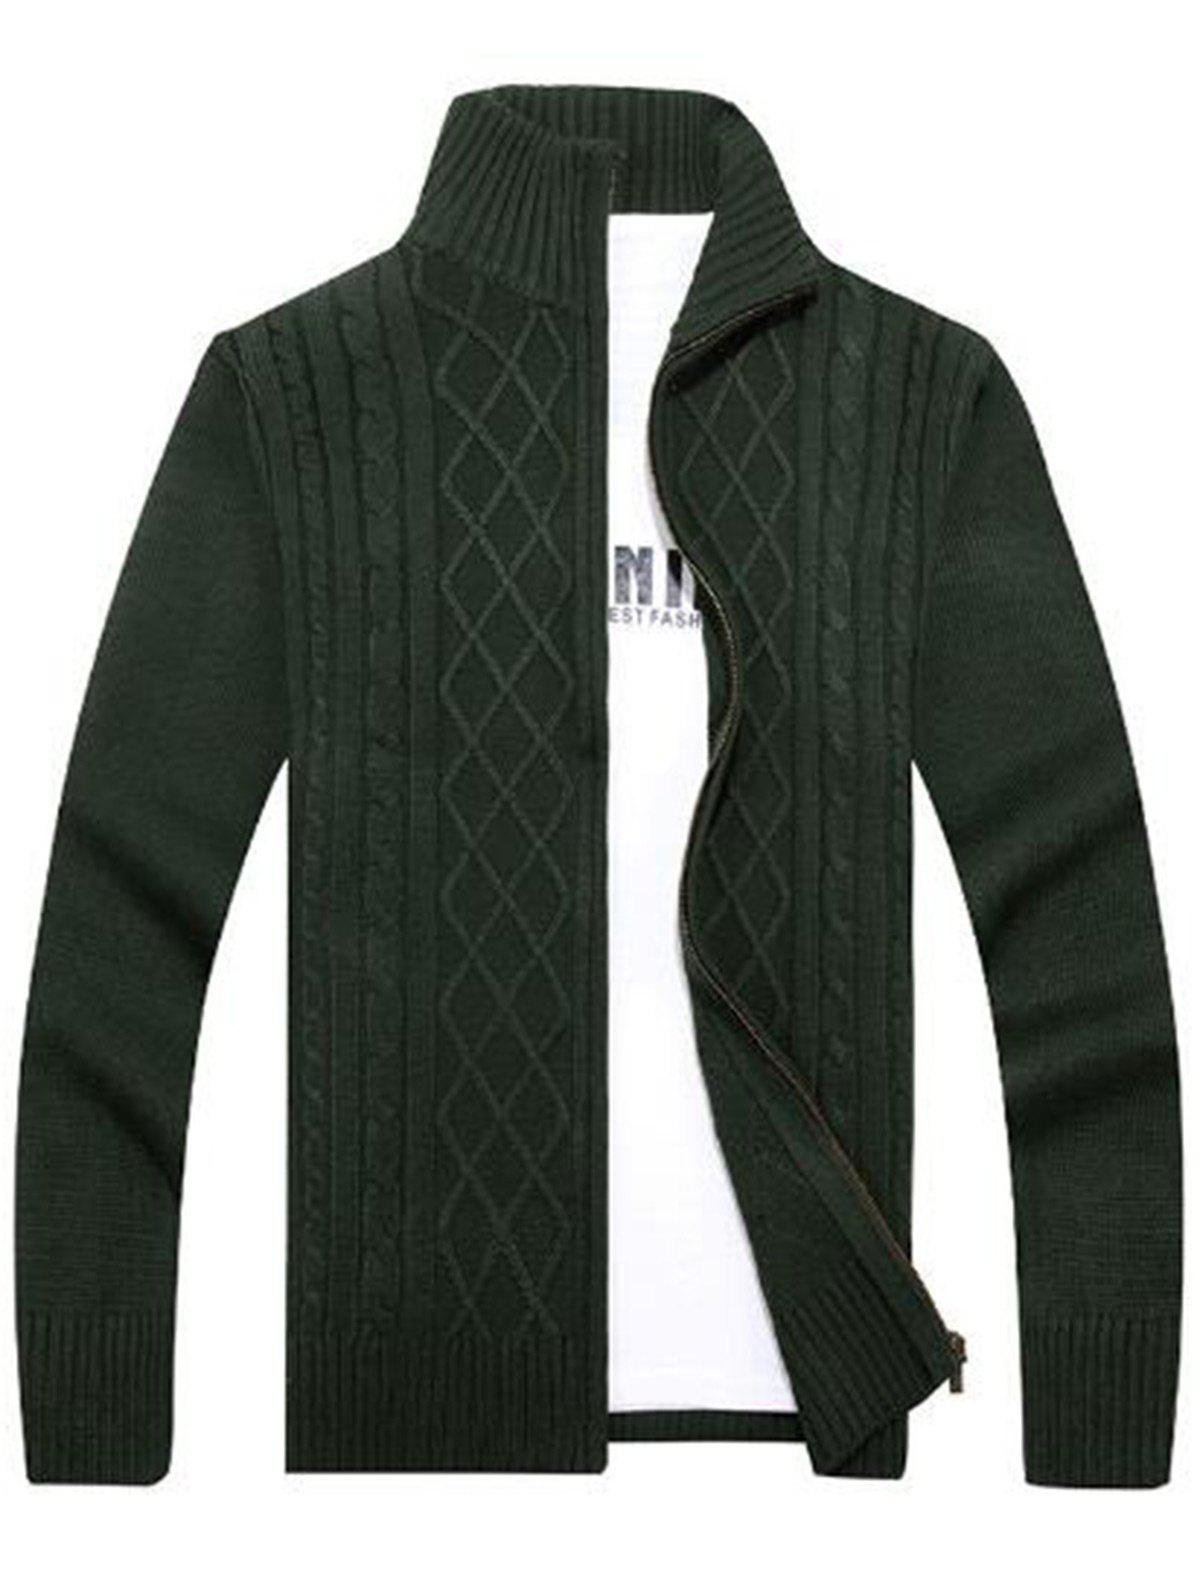 Fancy High Neck Cable Knit Sweater Cardigan